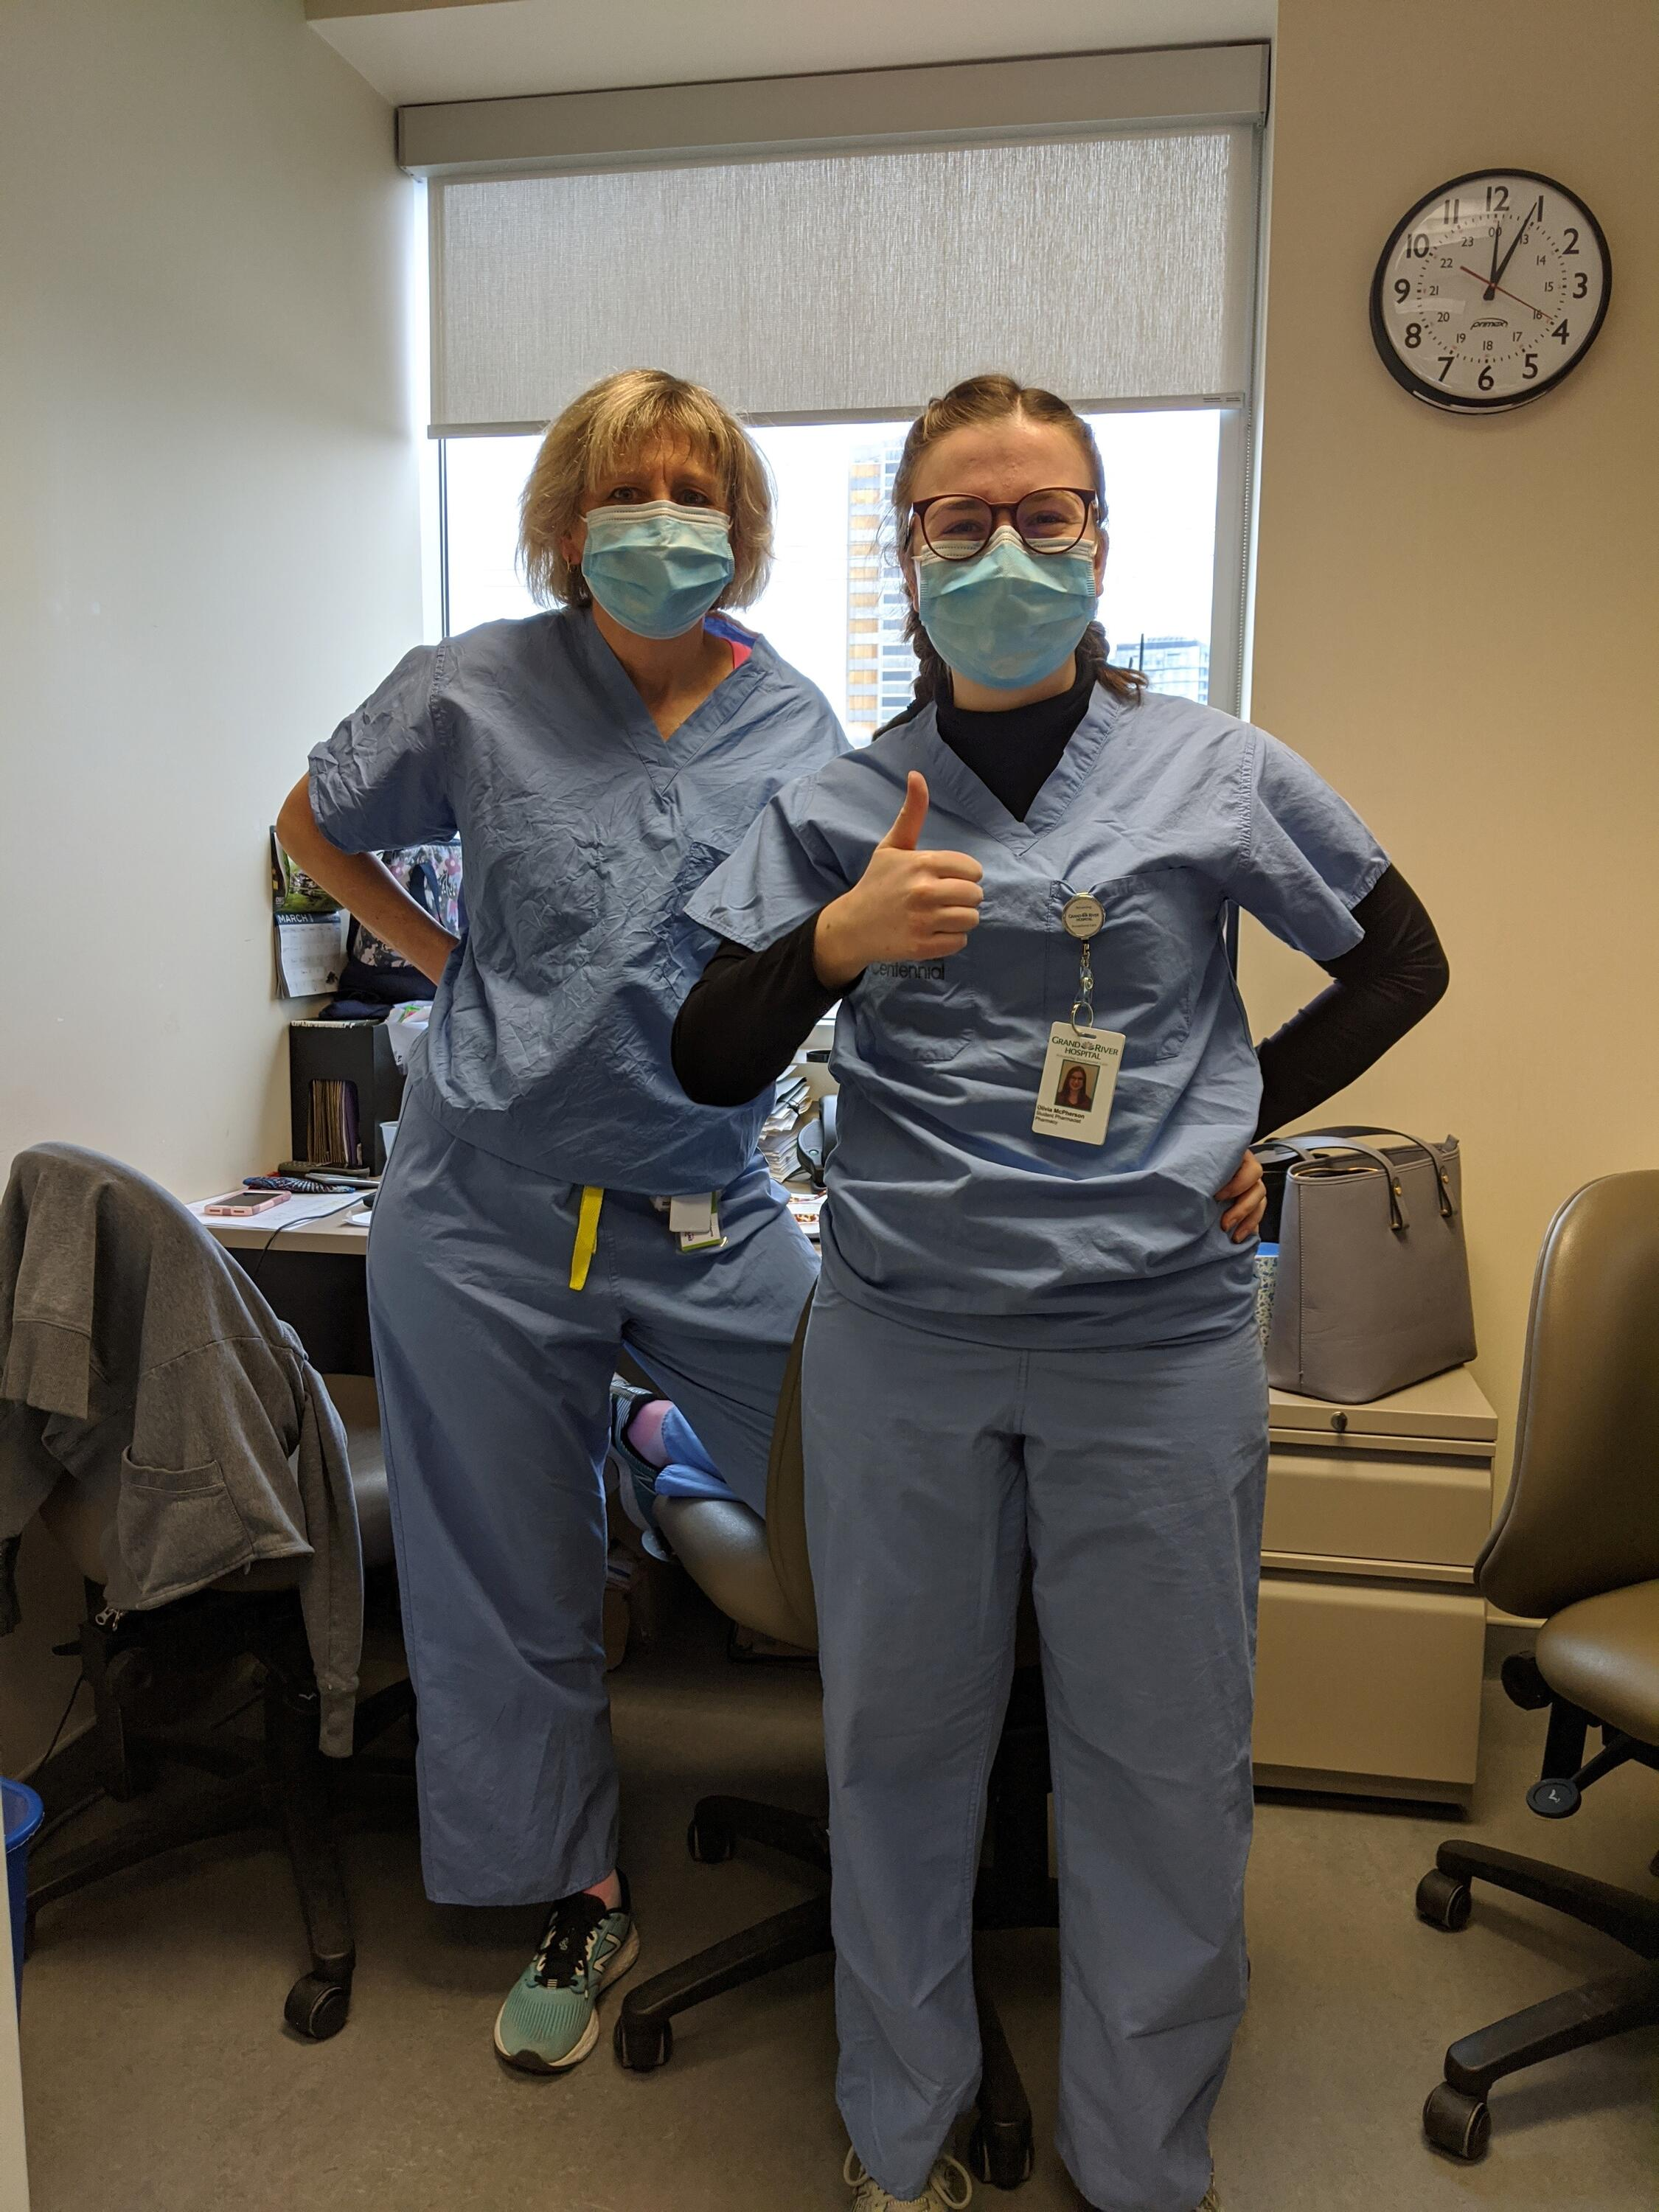 Olivia and supervisor wearing scrubs and face masks